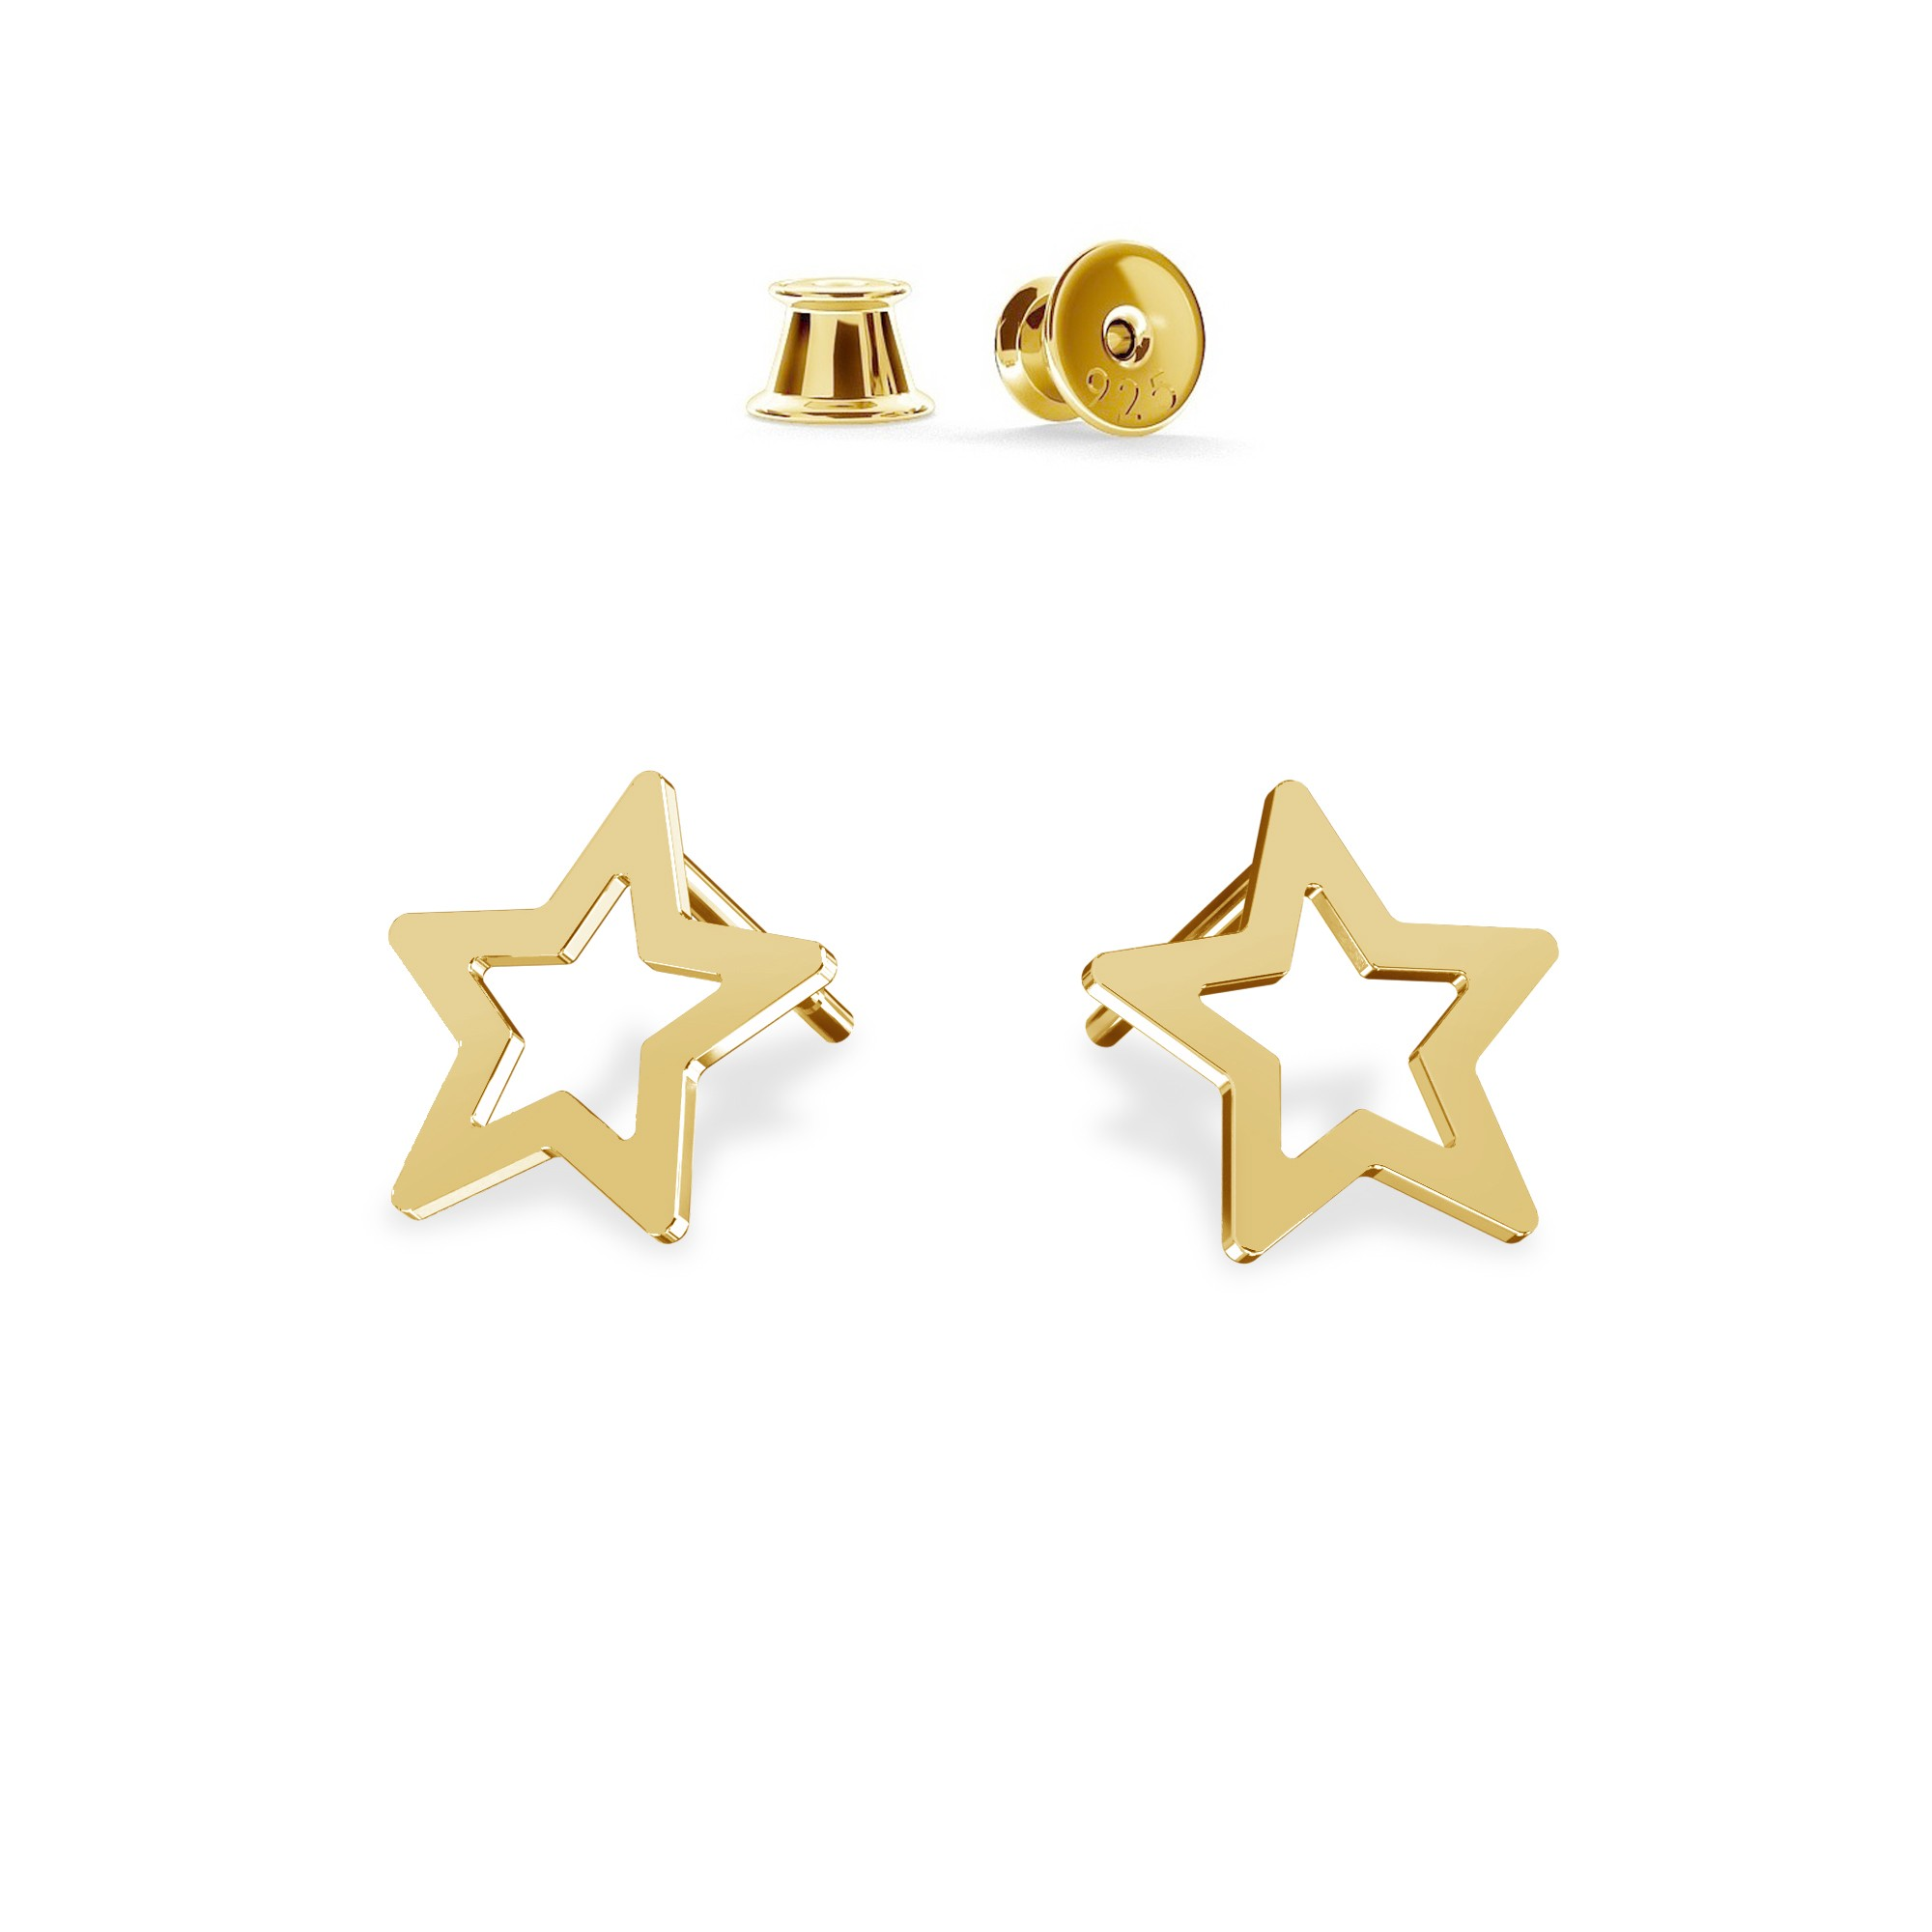 Silver openwork star stud earrings MON DÉFI, silver 925